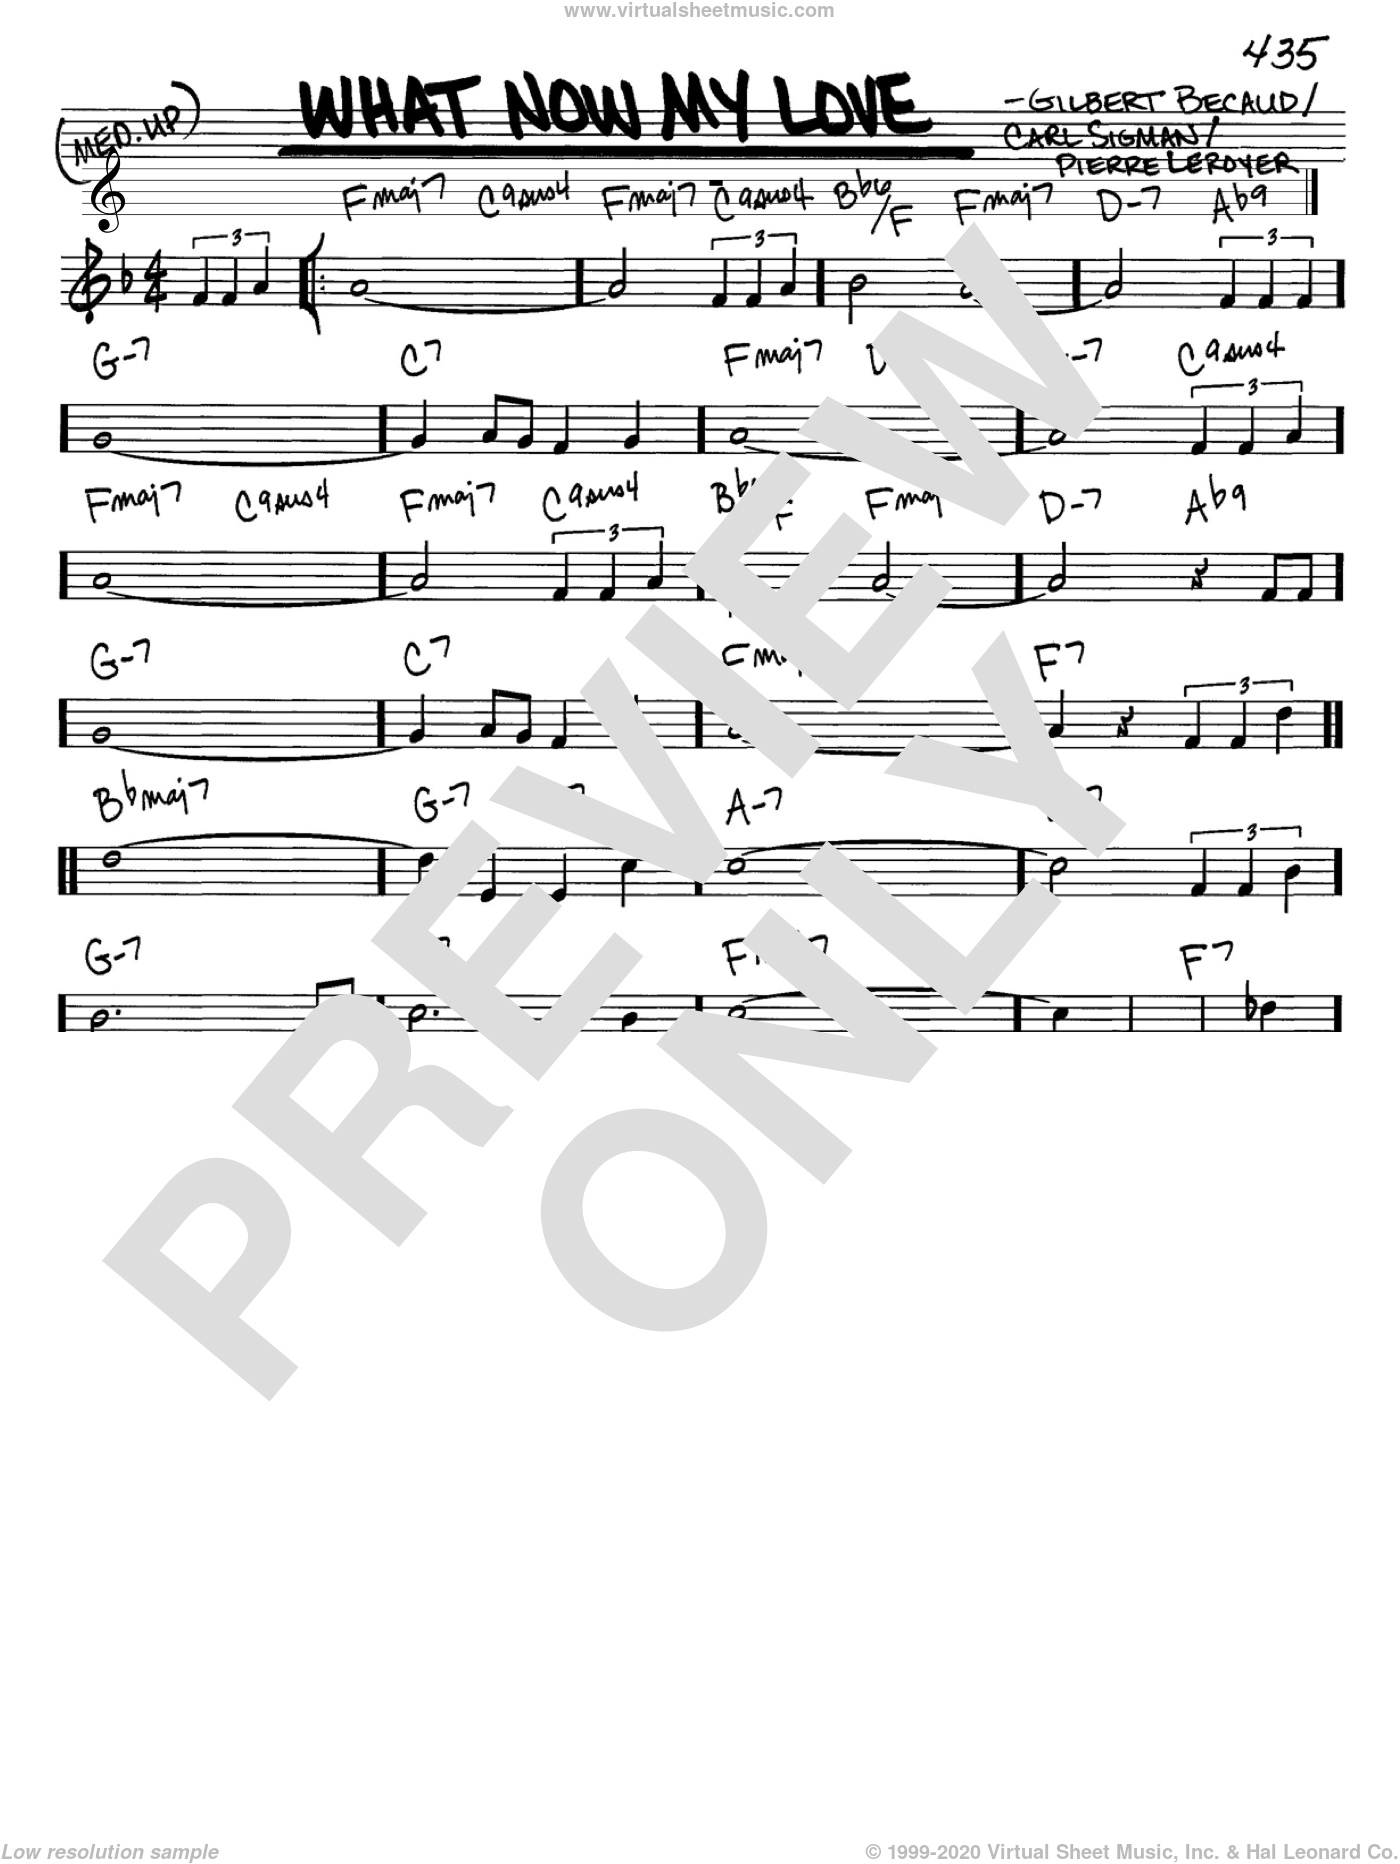 What Now My Love sheet music for voice and other instruments (C) by Pierre Delanoe, Elvis Presley, Frank Sinatra, Herb Alpert, Sonny & Cher, Carl Sigman and Gilbert Becaud. Score Image Preview.